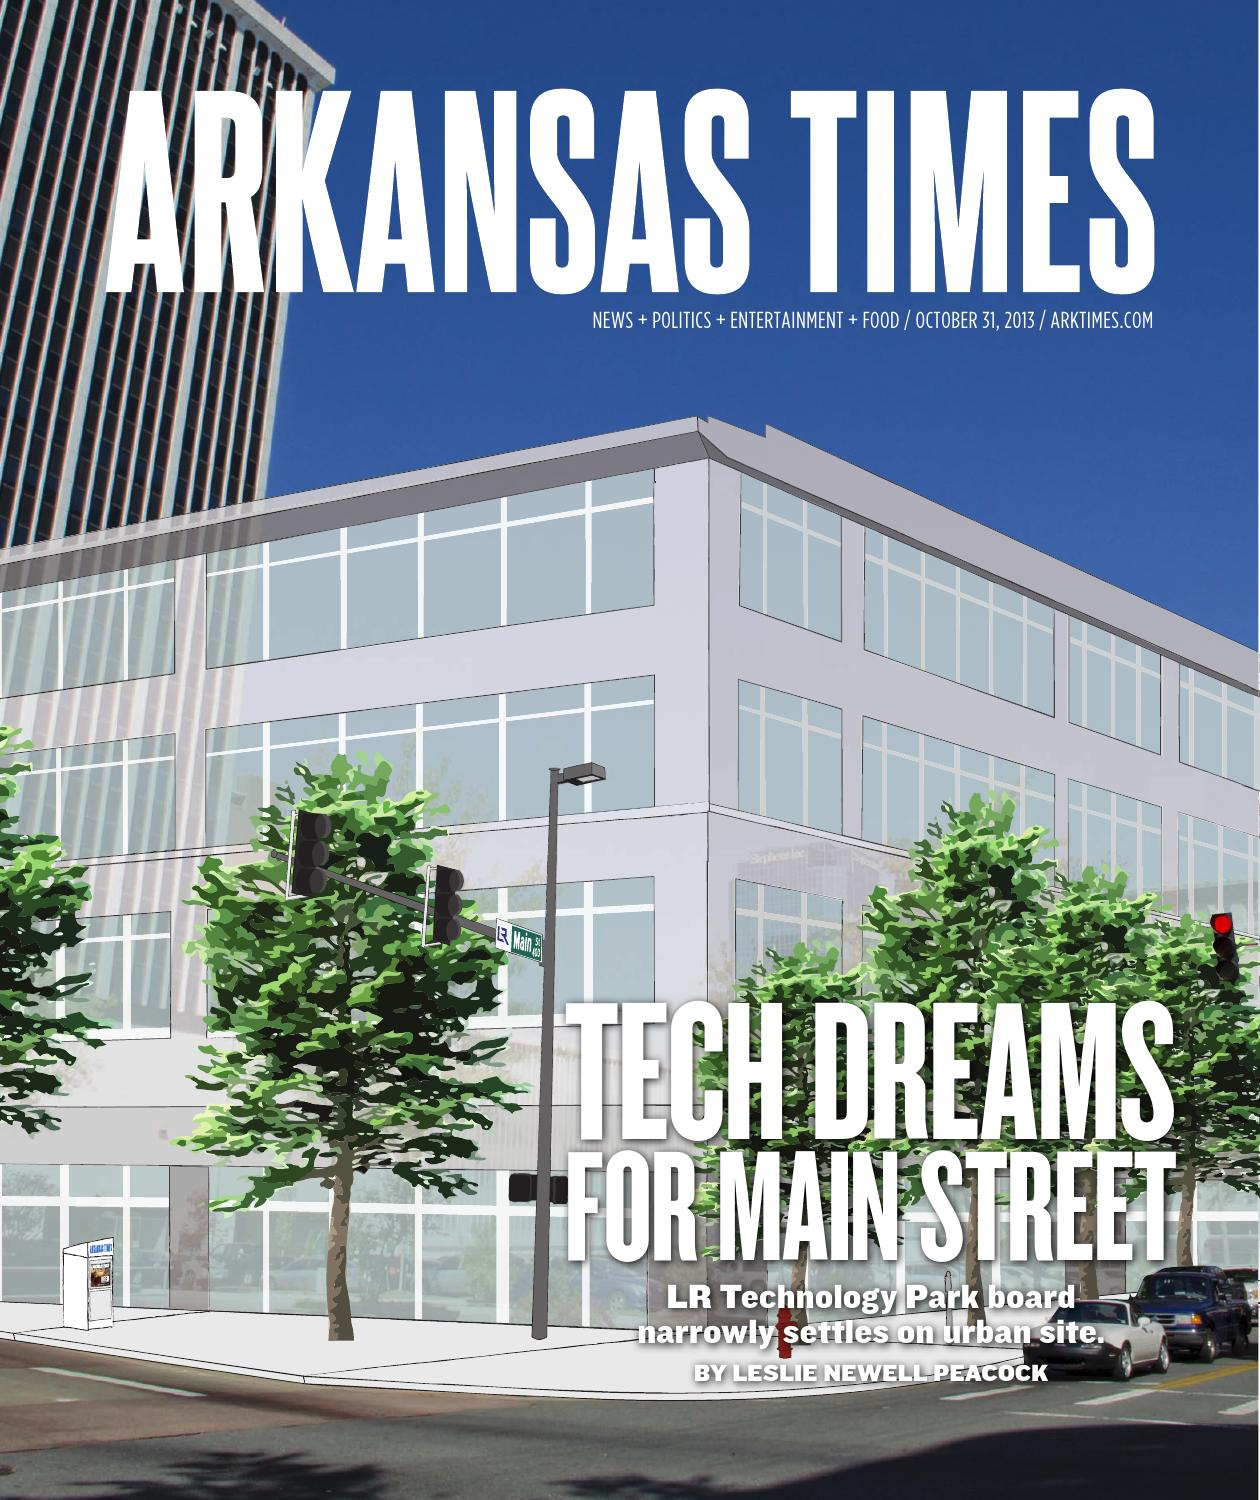 Arkansas Times - October 31, 2013 by Arkansas Times - issuu